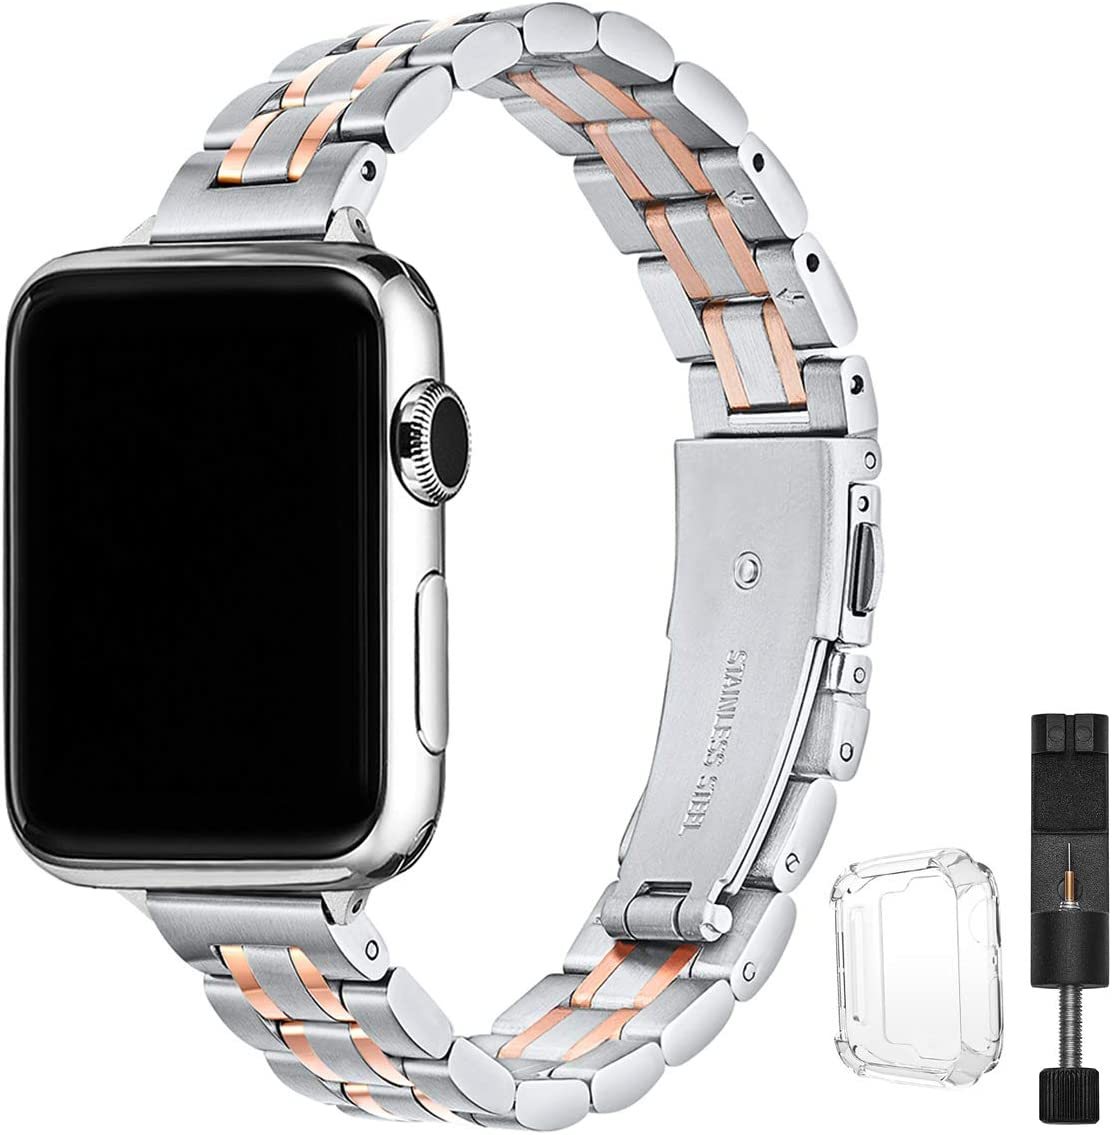 STIROLL Thin Replacement Band Compatible for Apple Watch 38mm 40mm 42mm 44mm, Stainless Steel Metal Wristband Women Men for iWatch SE Series 6/5/4/3/2/1 (Silver+Rose Gold, 38mm/40mm)